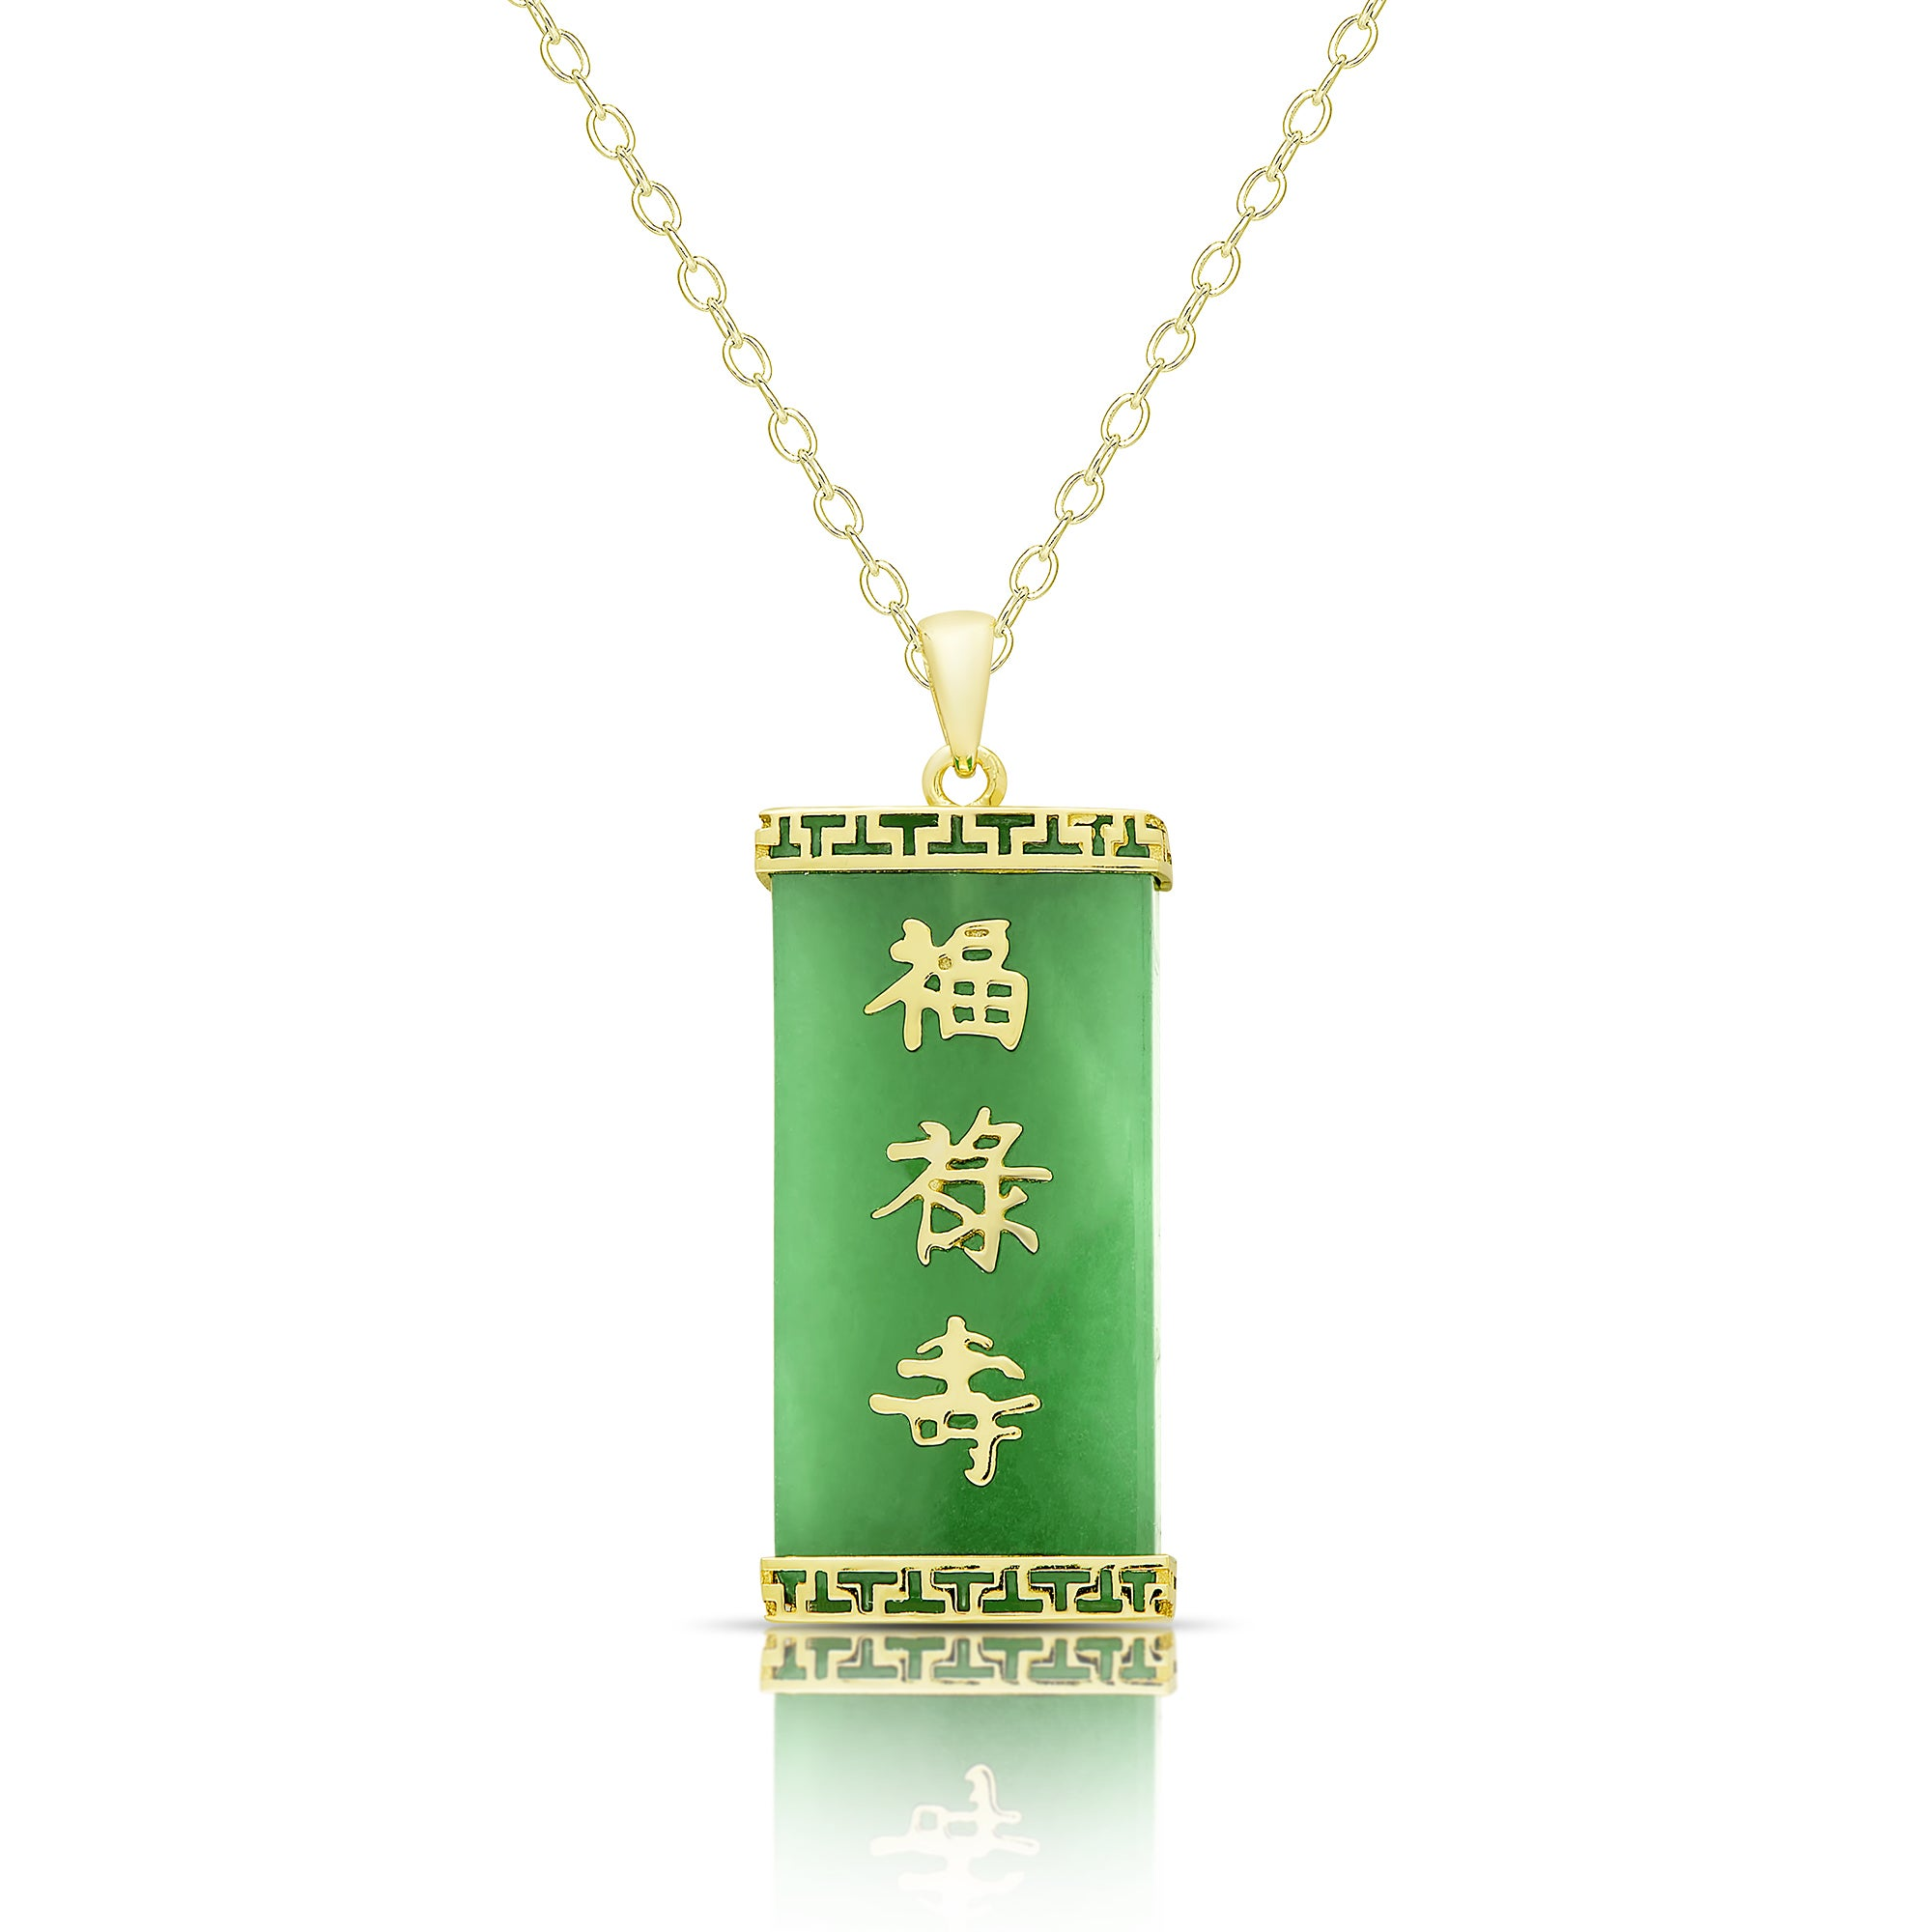 jade cap key gold donut with in pendant p necklace ebay yellow greek fortune green